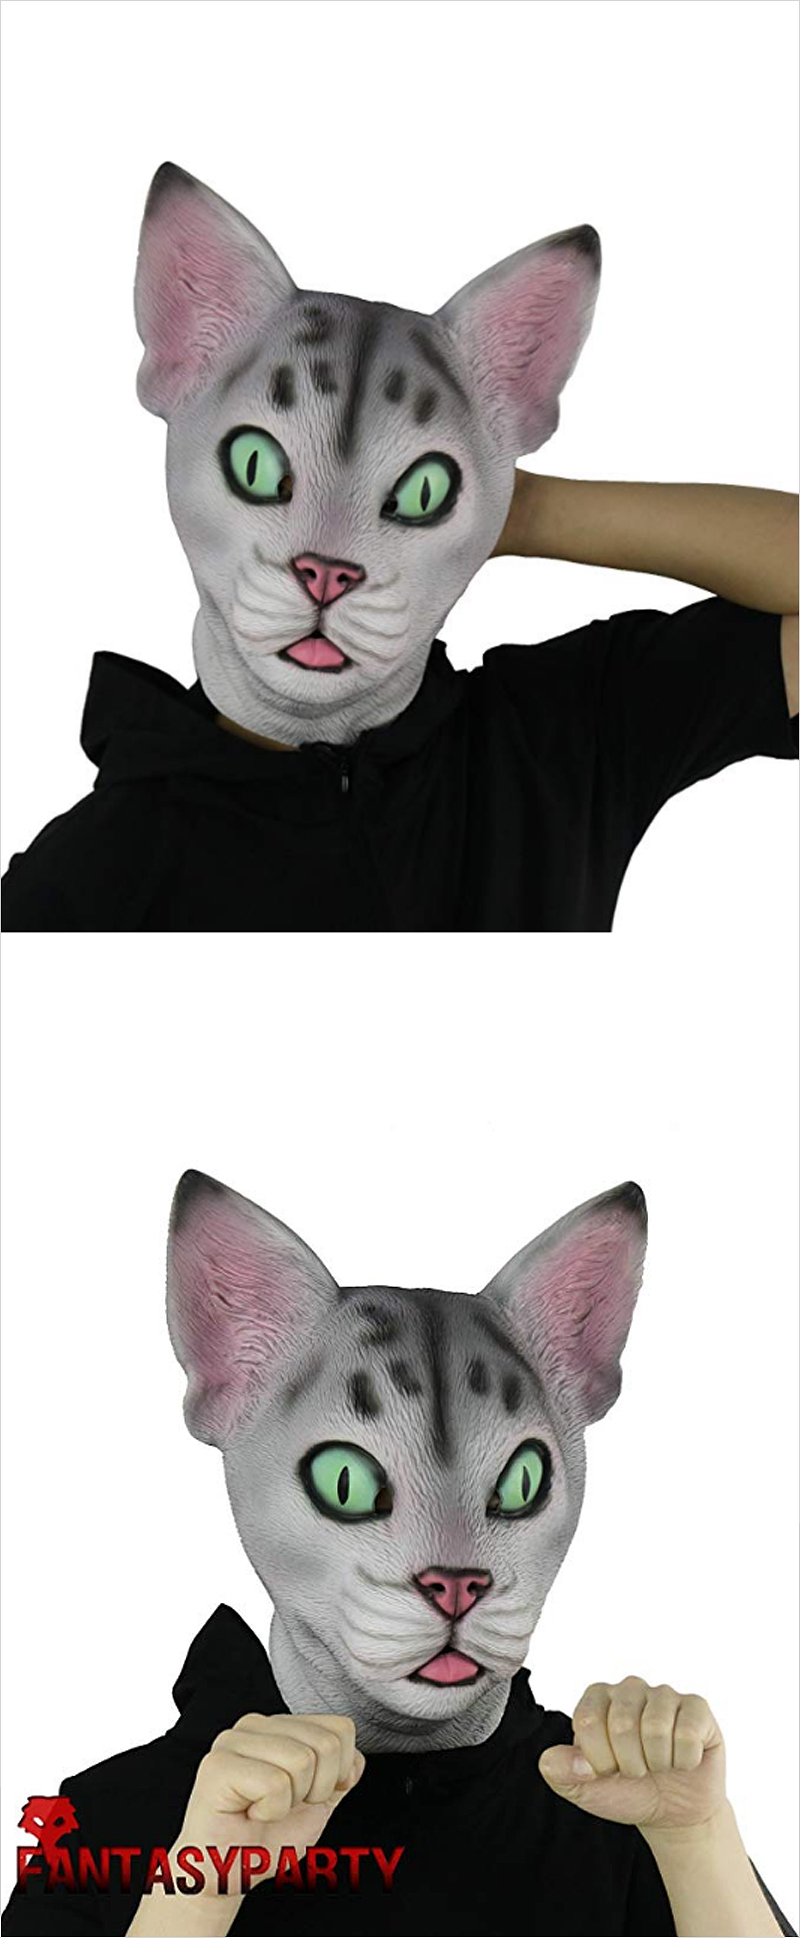 Fantasy-Party-Halloween-Cute-Cat-Mask